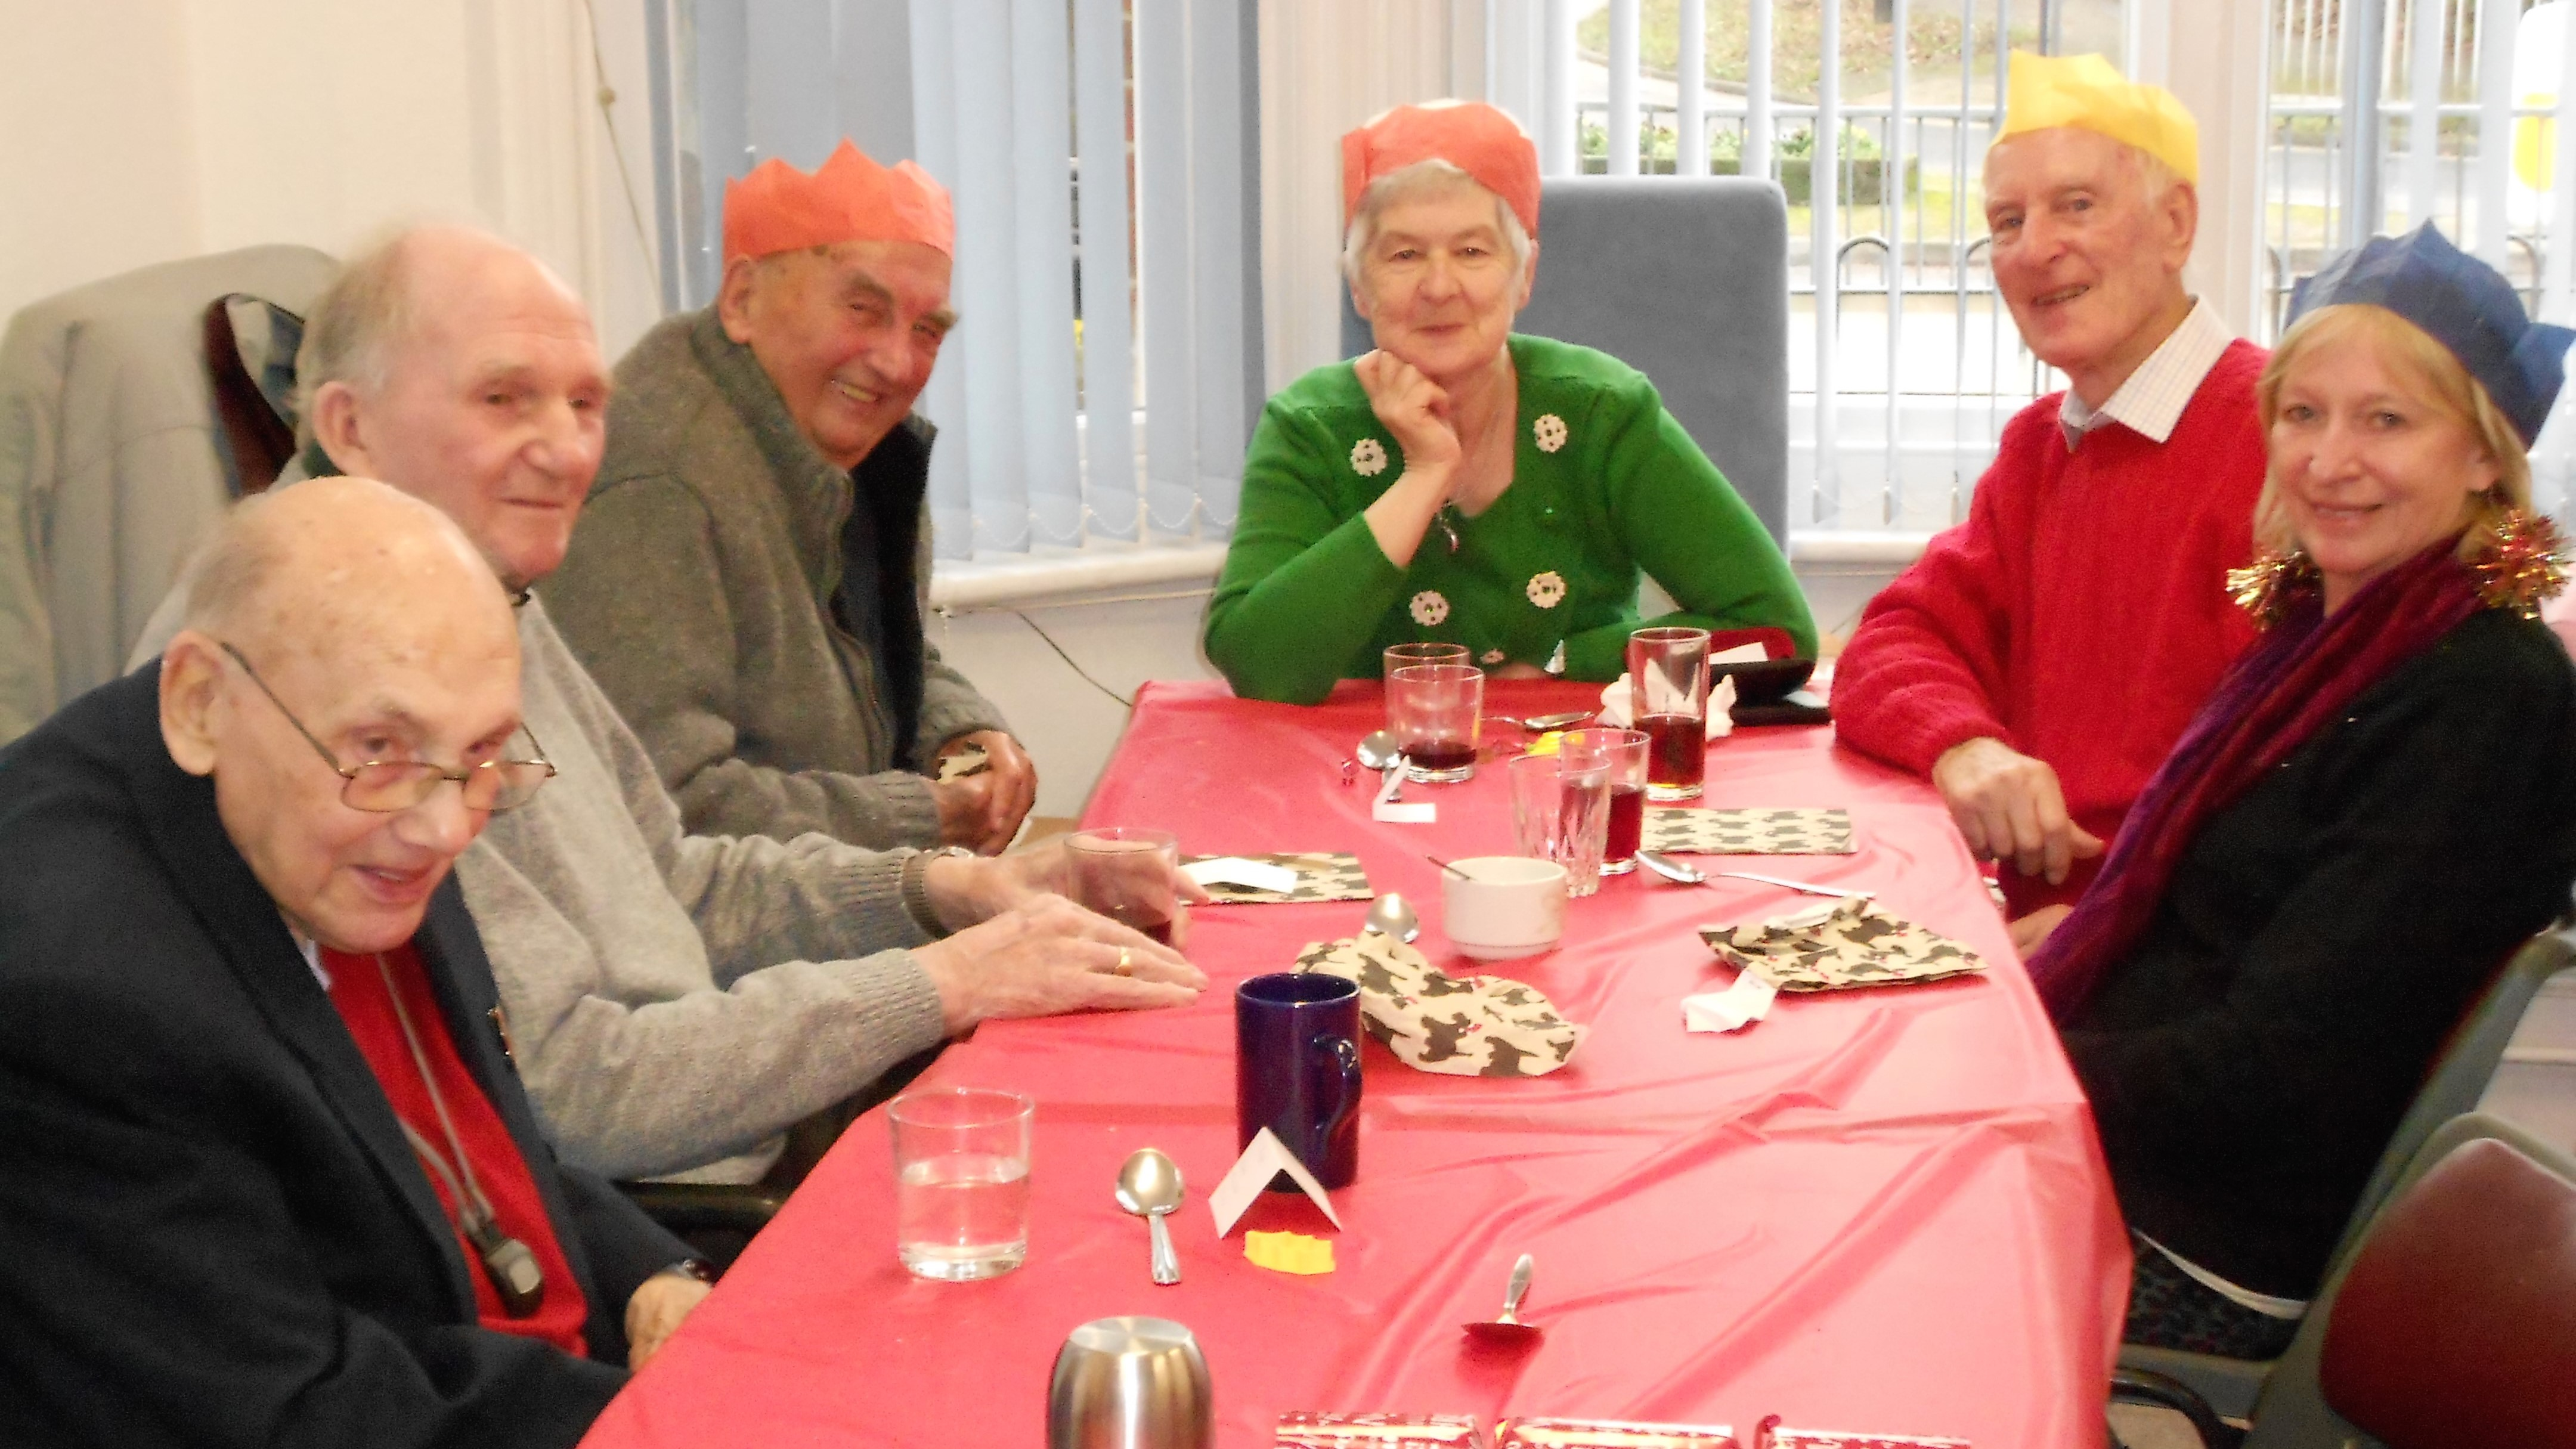 4 men and 2 women sat round a festive decorated table with Christmas hats on